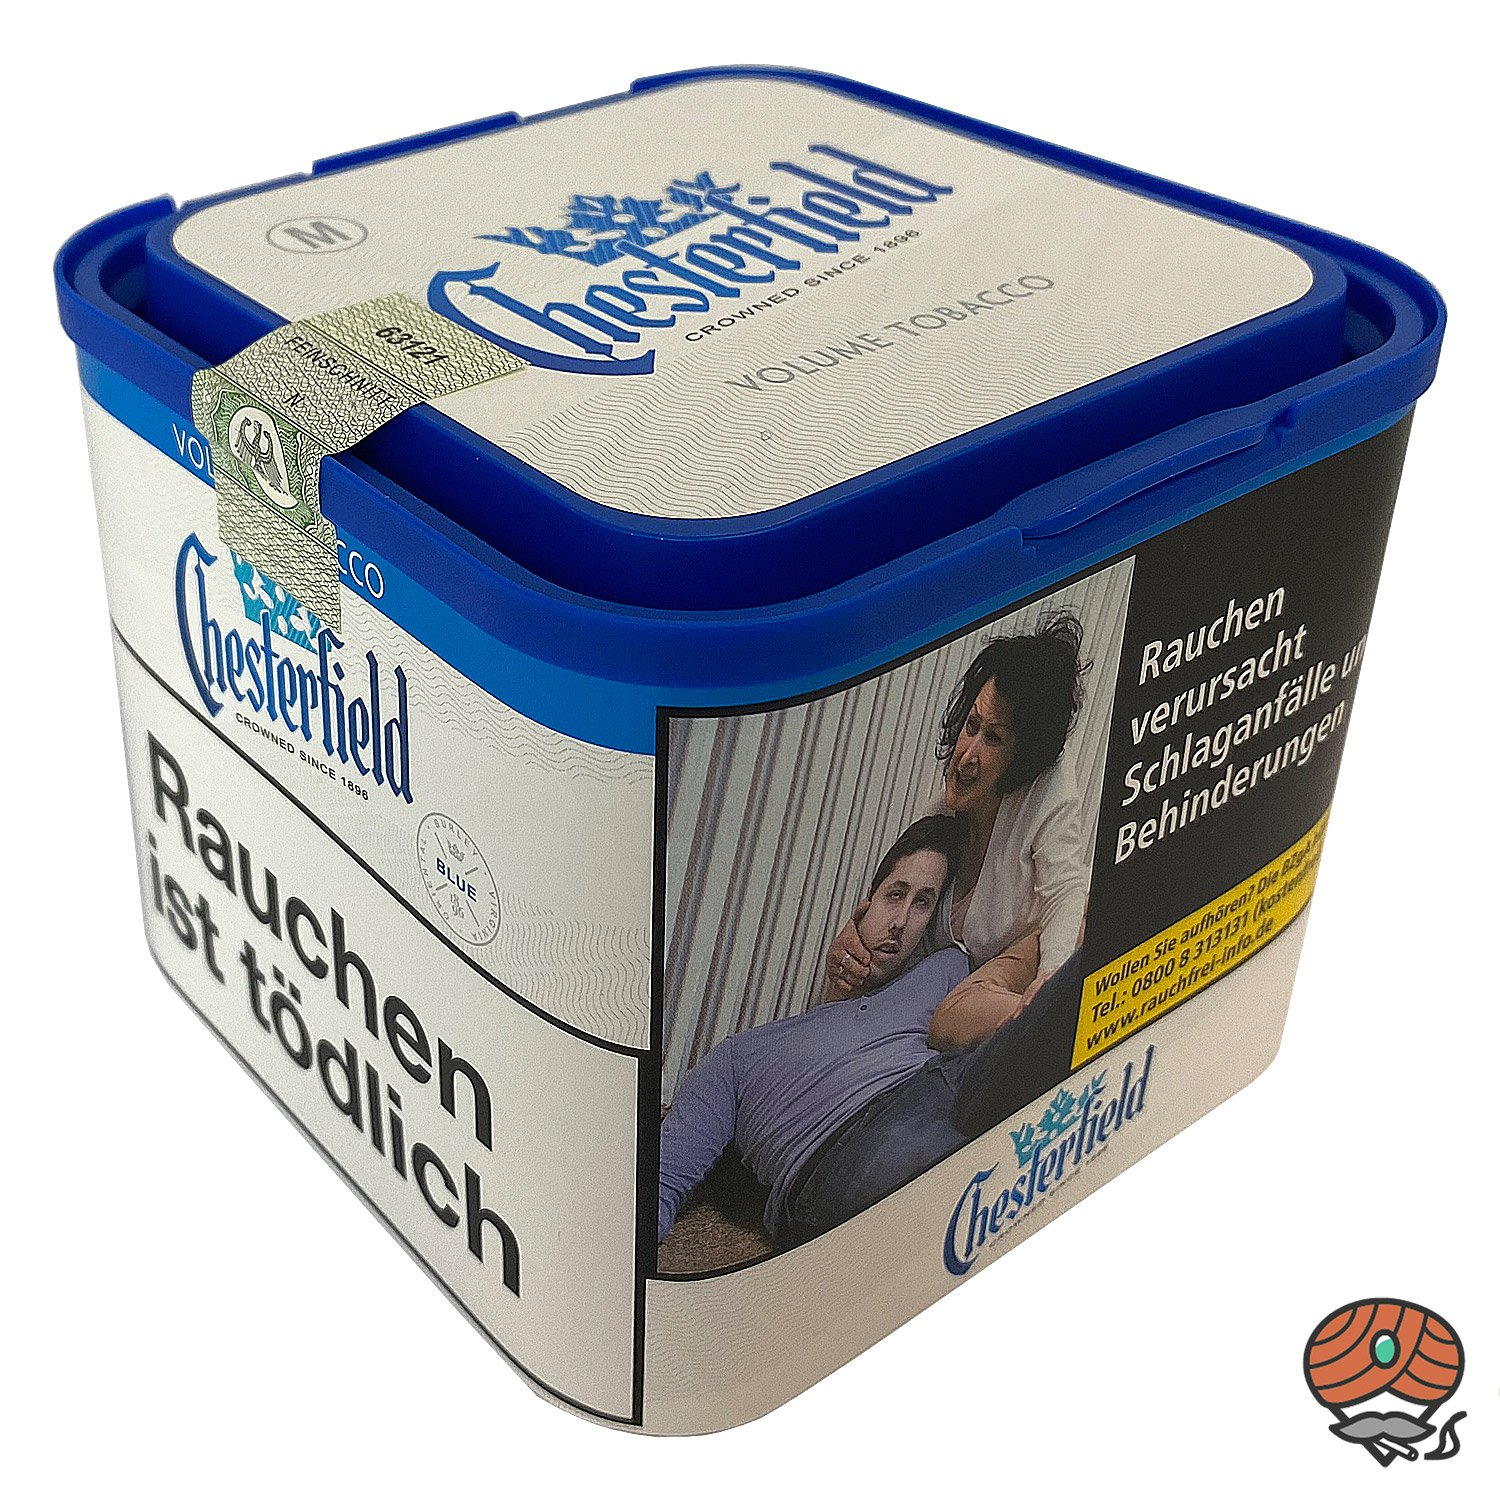 Chesterfield Blue Volumentabak 45g M Dose